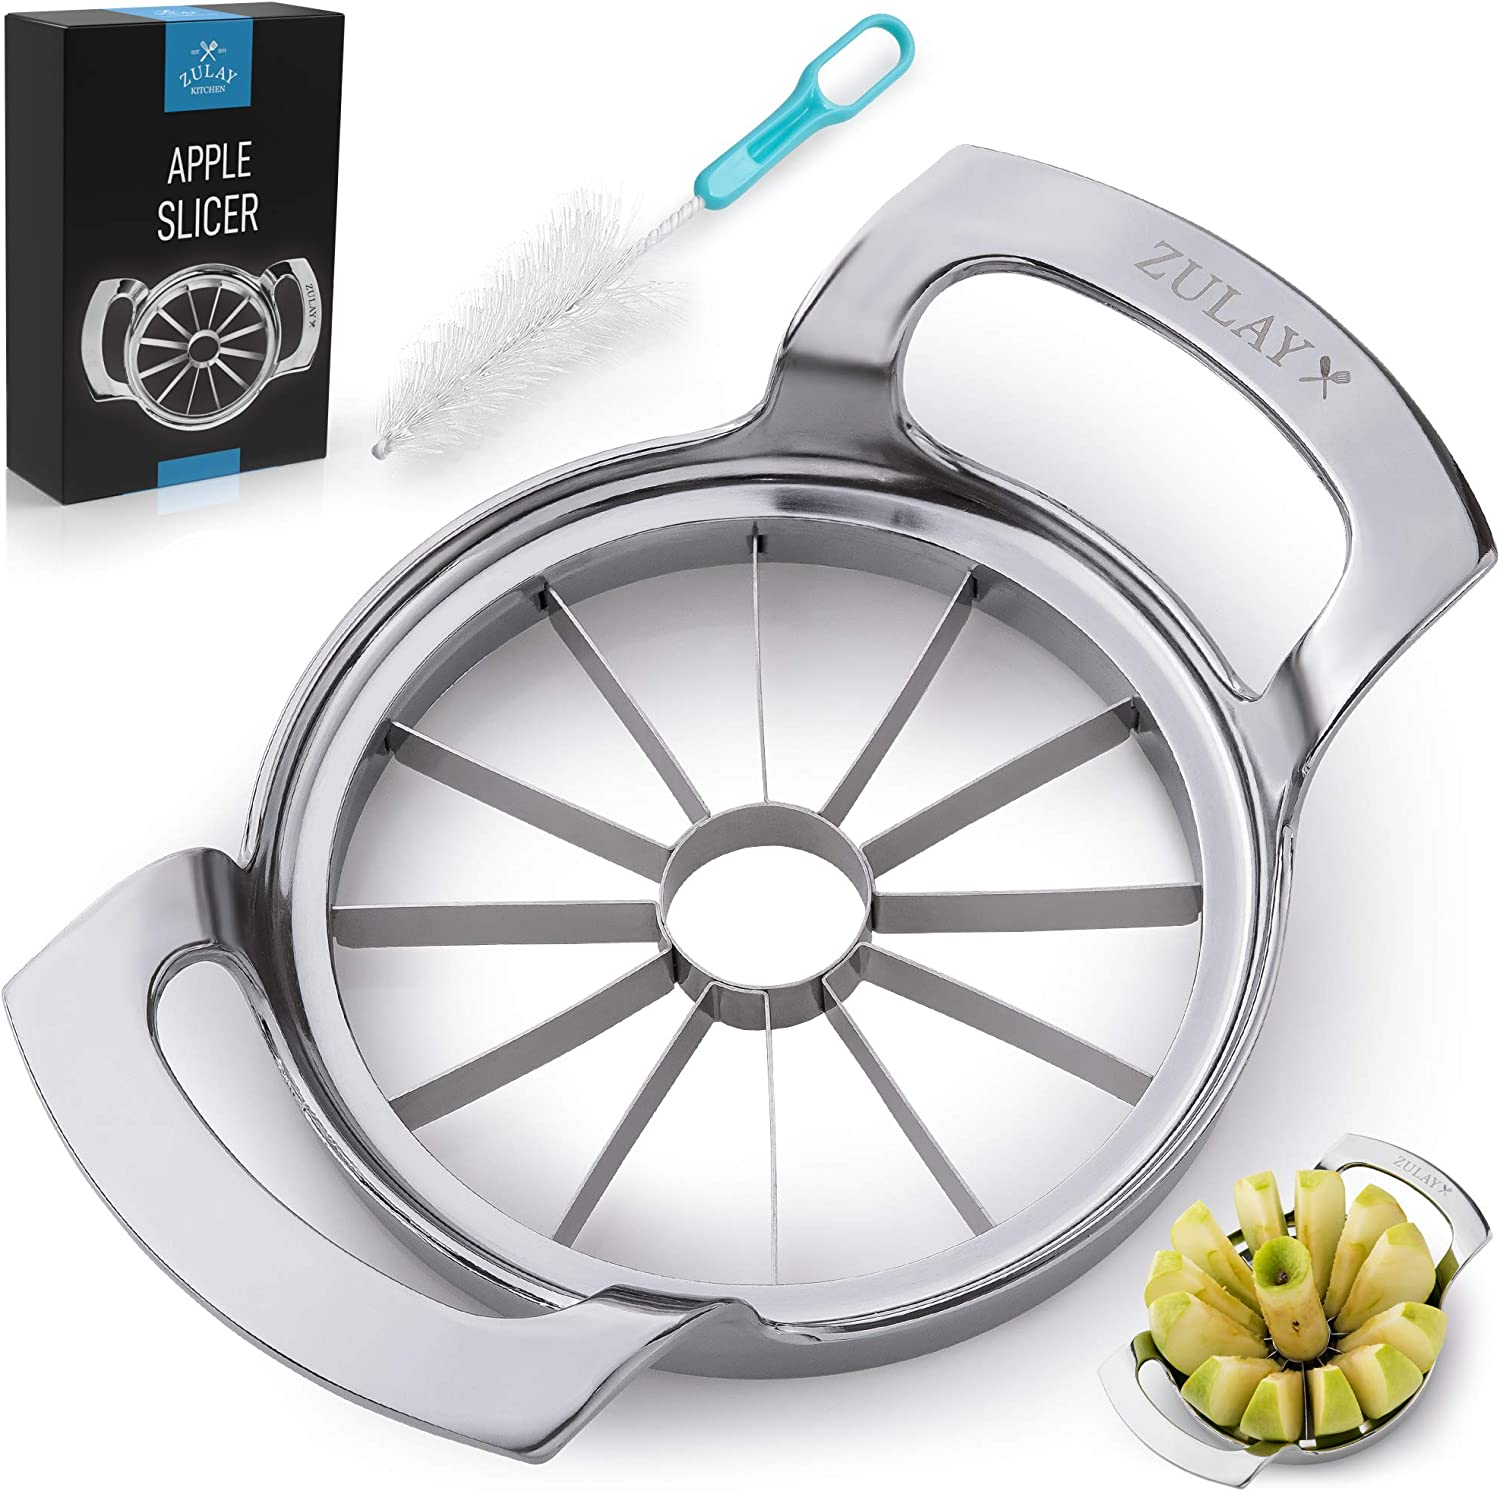 Zulay Kitchen 12-Blade Apple Slicer - Heavy Duty Metal Apple Cutter With Stainless Steel Ultra-Sharp Blades - Durable Apple Corer and Slicer For Coring, Slicing, & Pitting Up To 4 Inch Apples